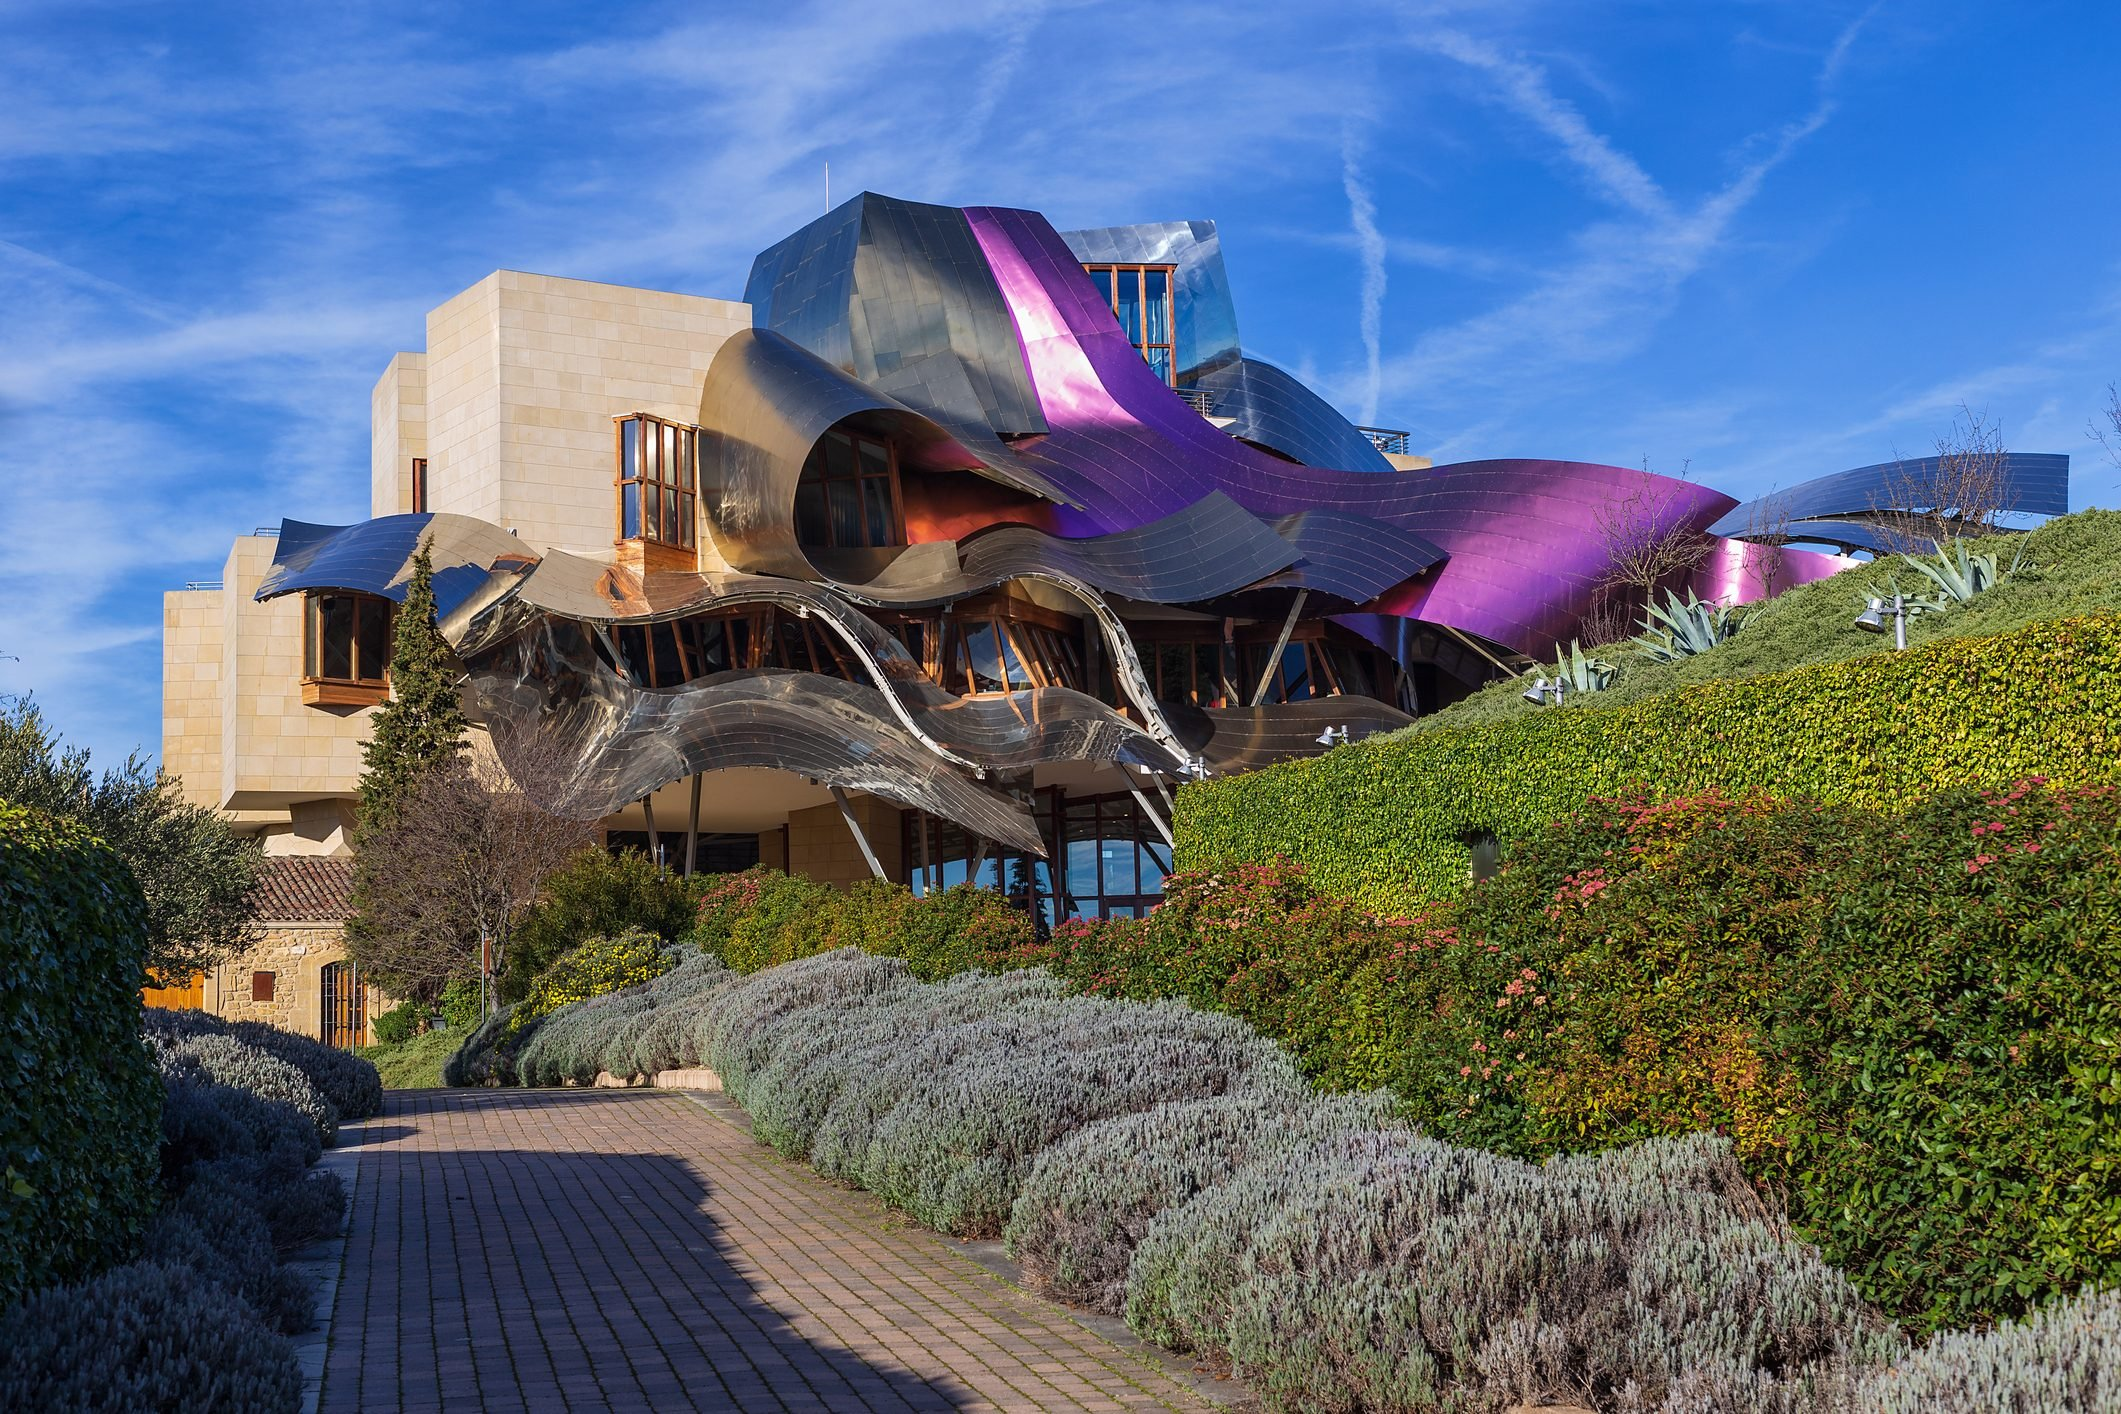 Marques de Riscal Hotel, a Frank Ghery building in Elciego, Spain, on March 2018